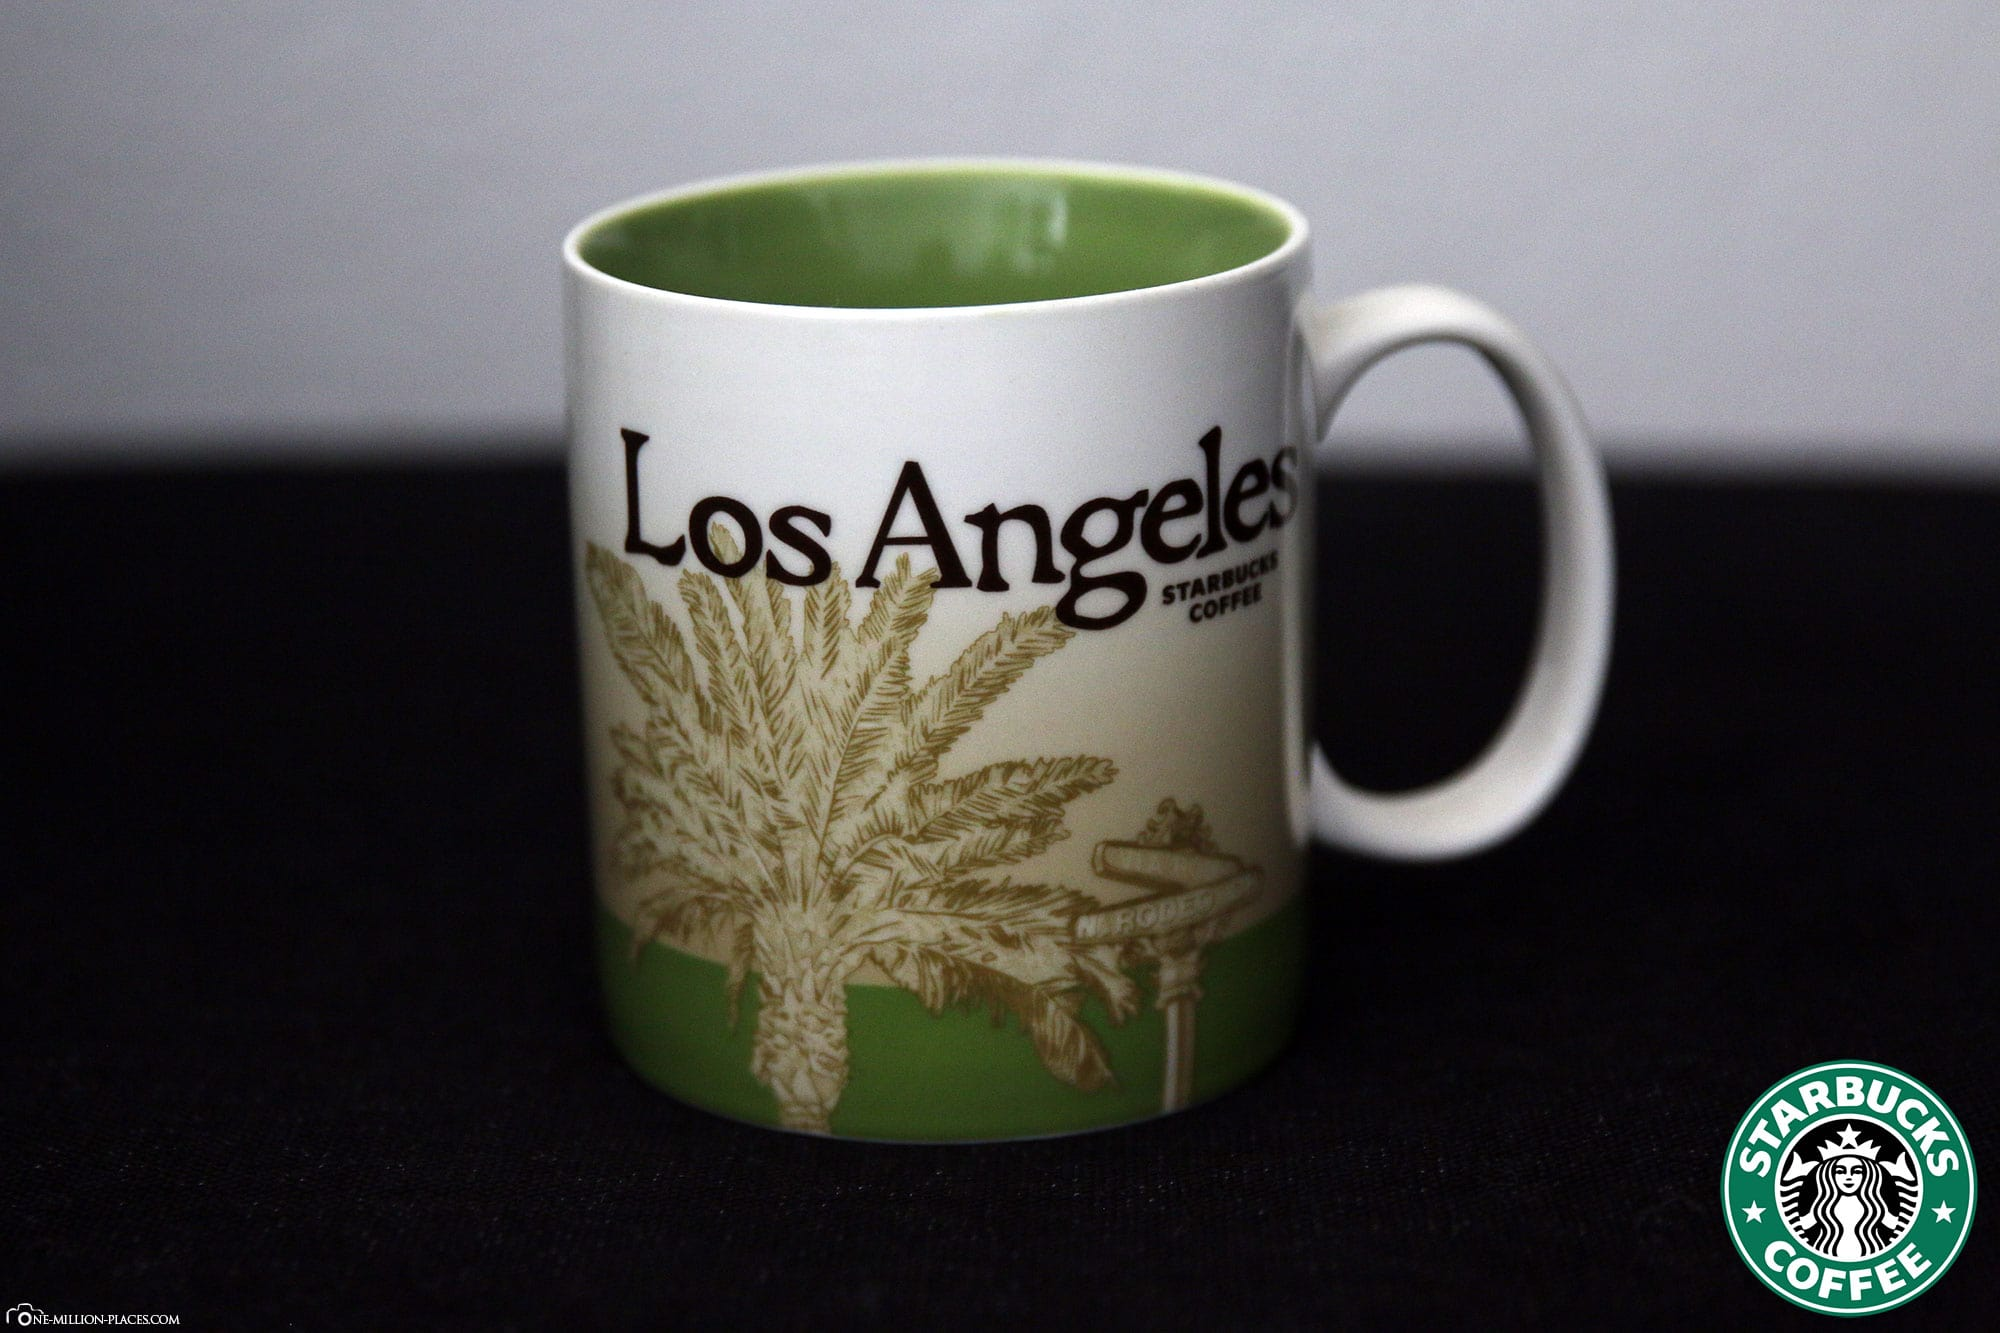 Los Angeles, Starbucks Cup, Global Icon Series, City Mugs, Collection, USA, Travelreport